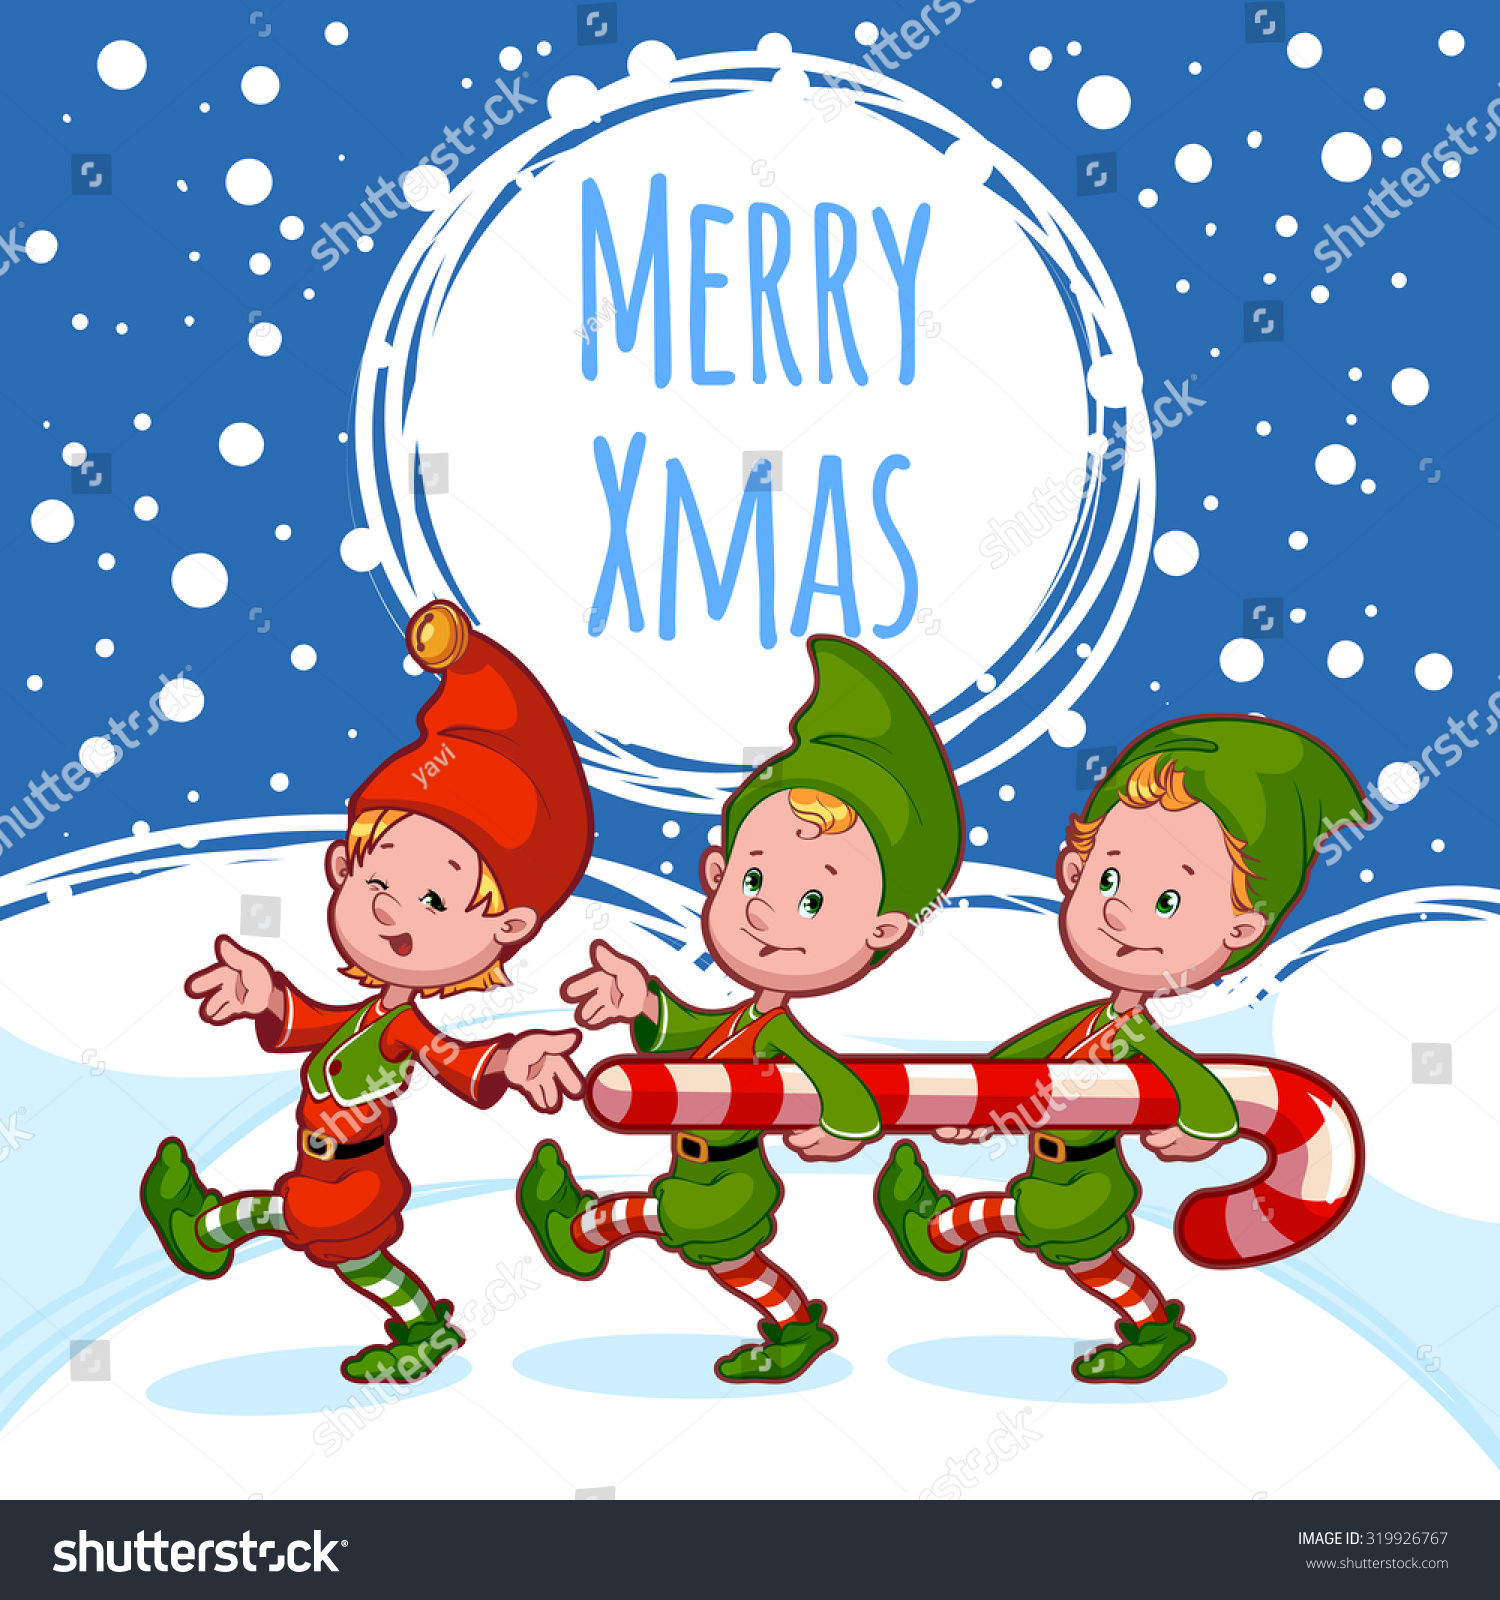 Christmas Card With Three Elves With Candy. Template Christmas ...